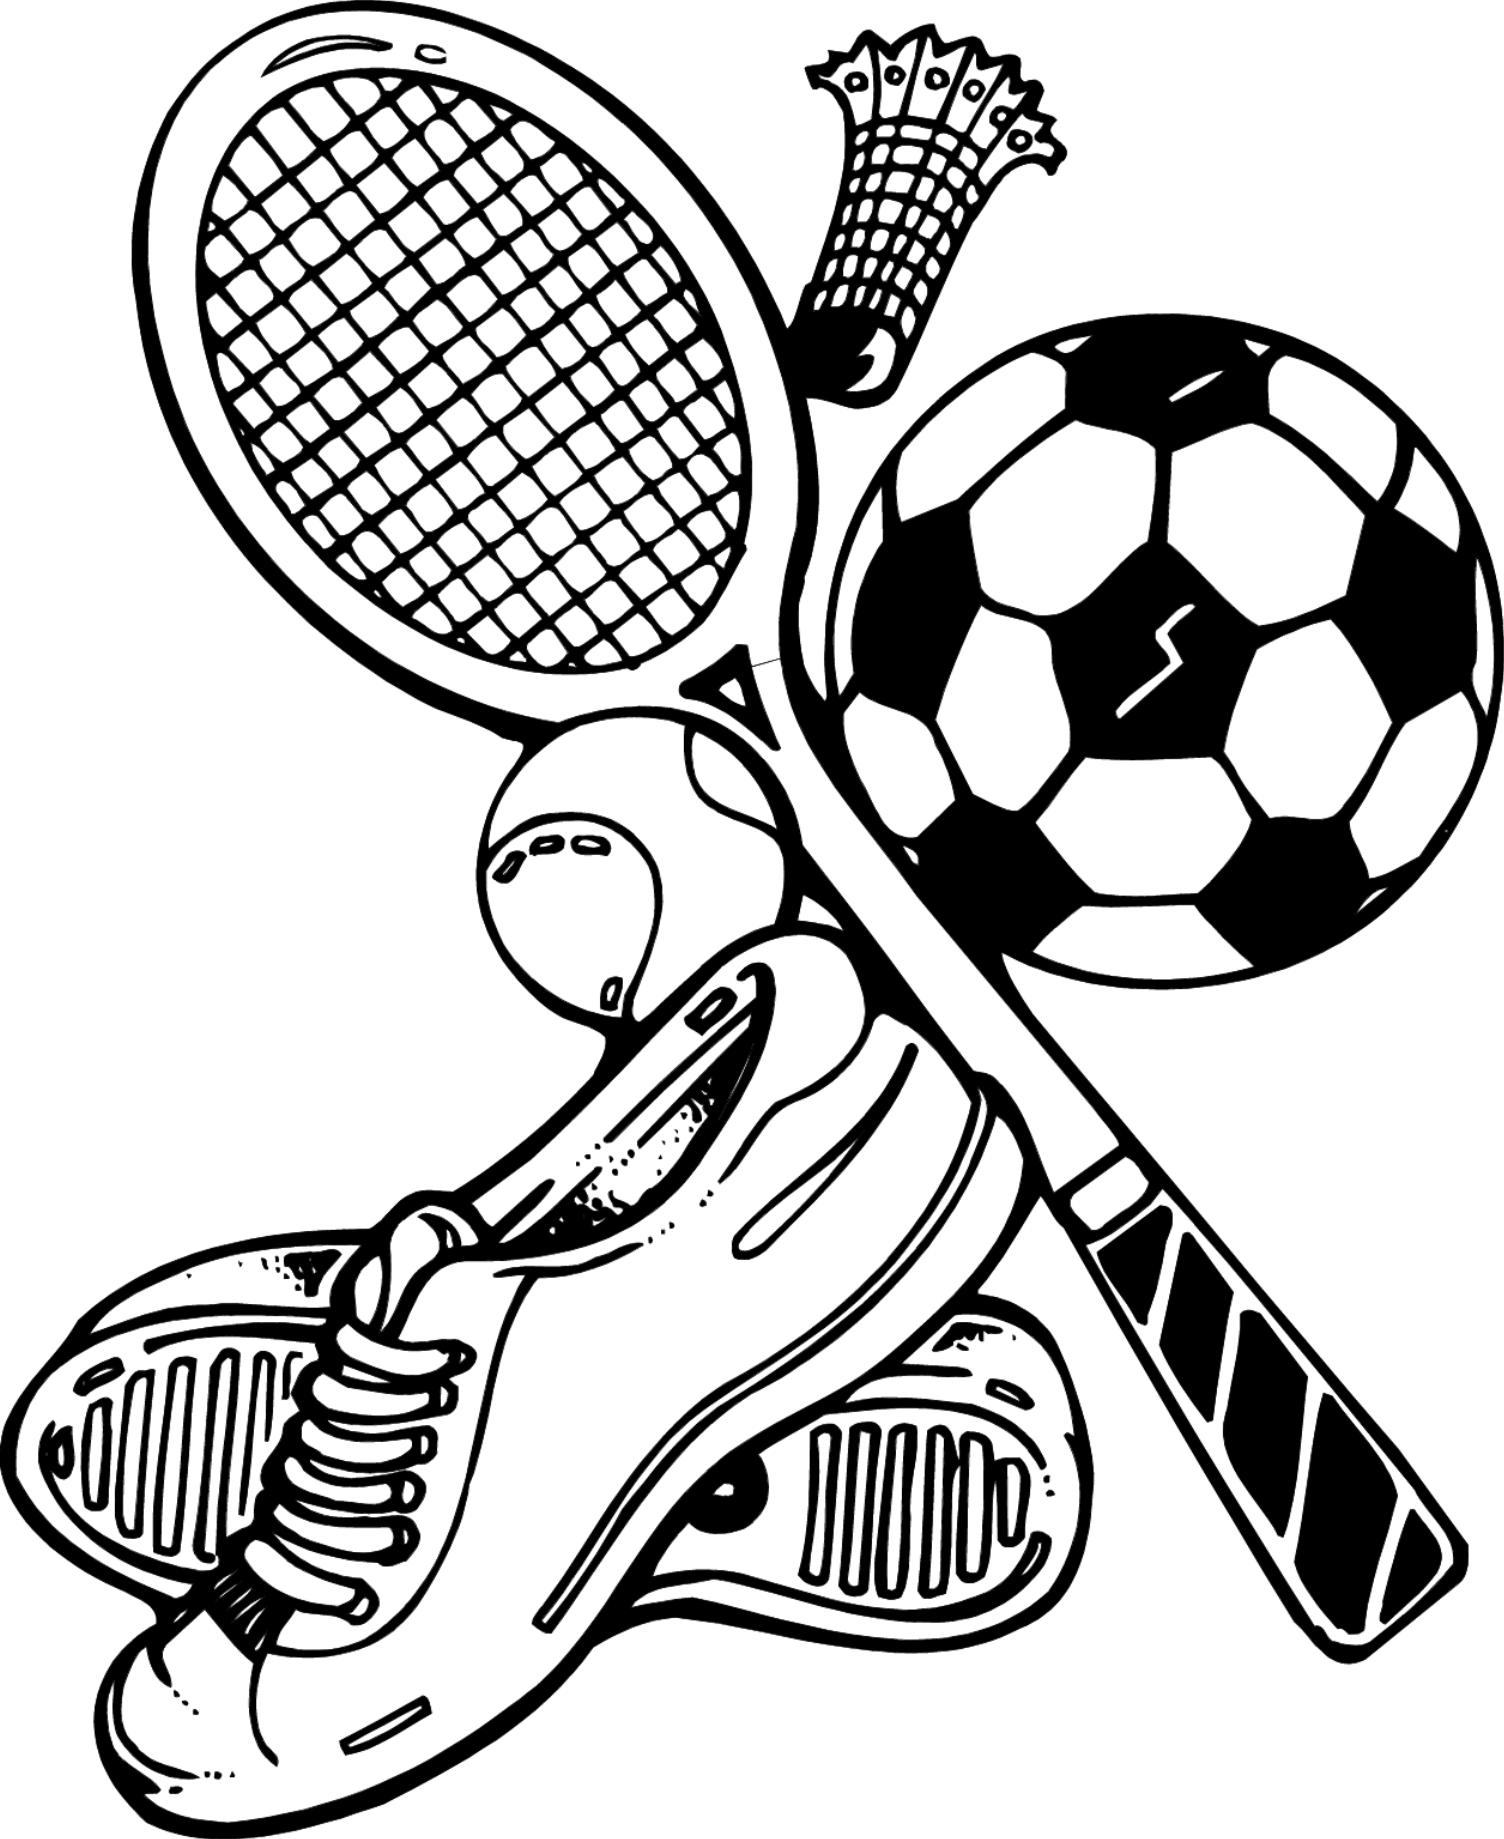 Sports Coloring Pages - Sports Coloring Pages